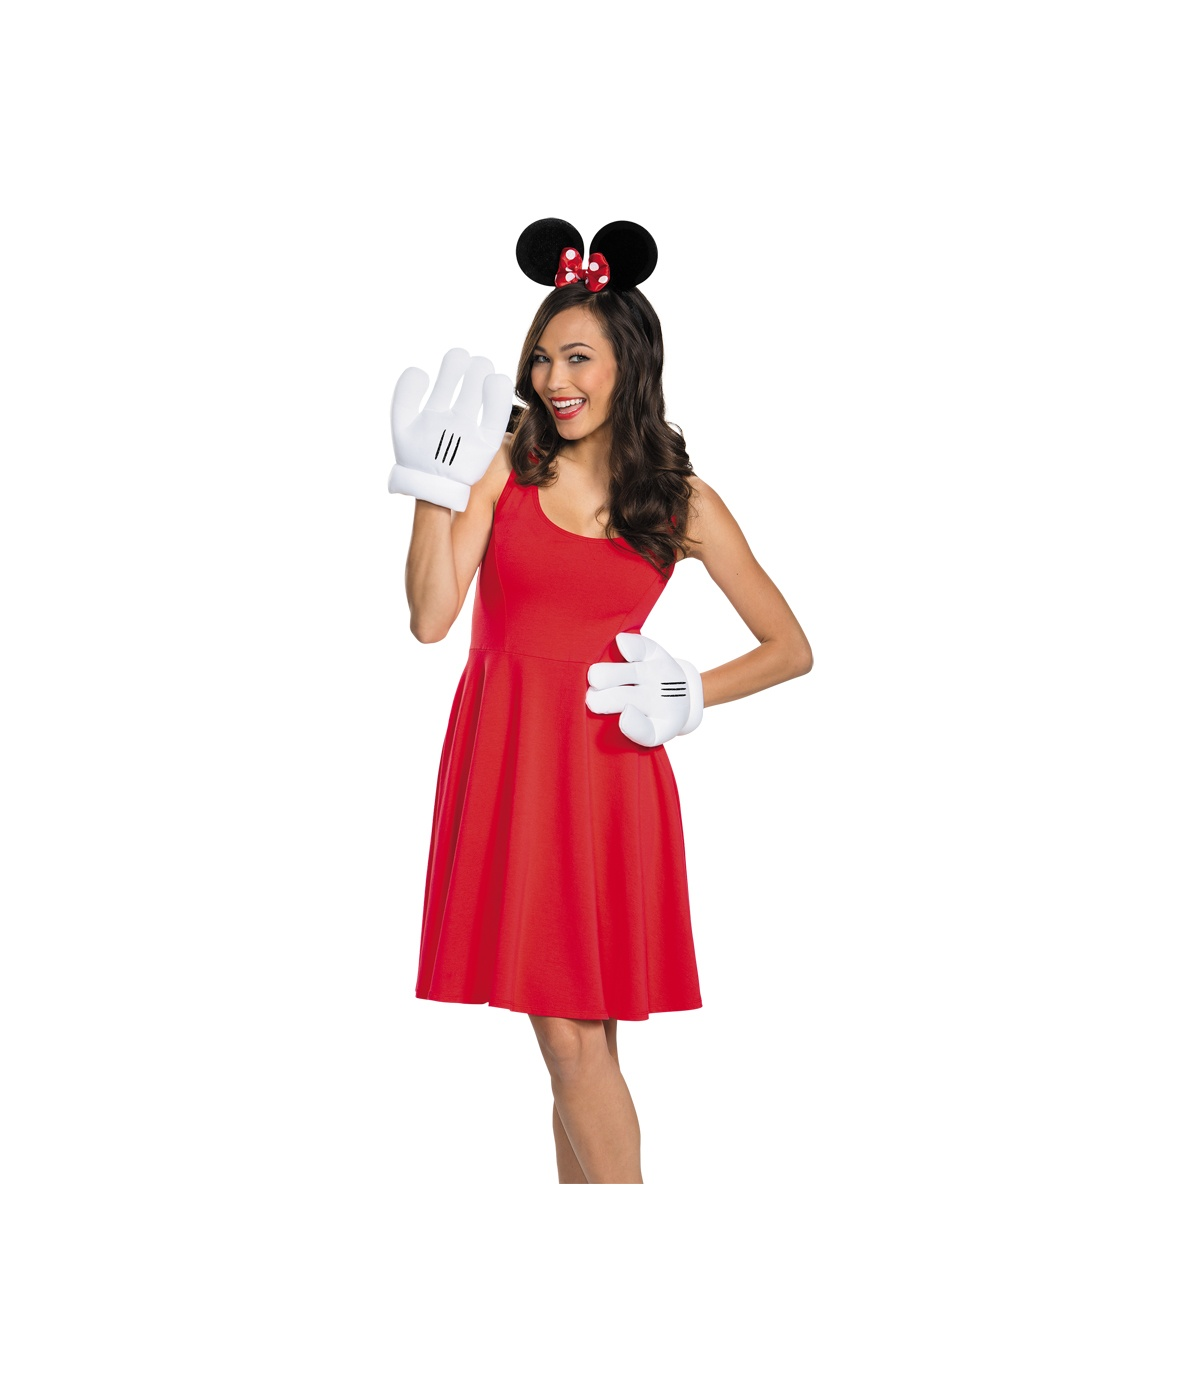 Minnie Mouse Ears and Gloves Women Set - Costume Accessories